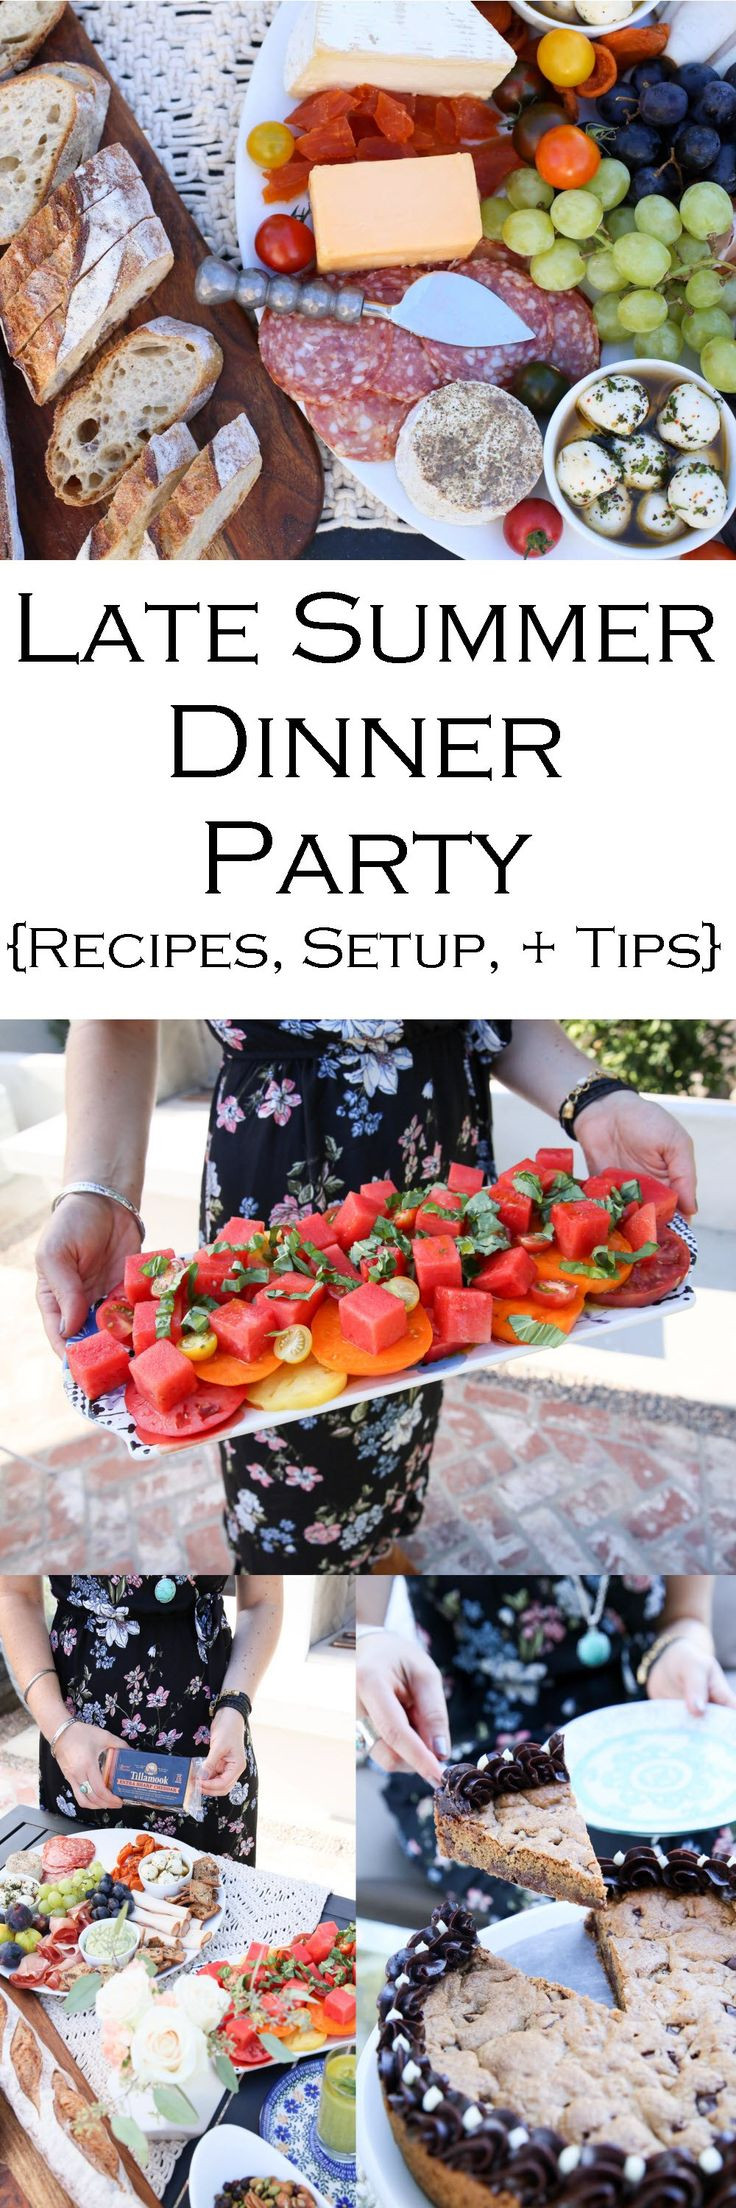 Summer Dinner Party Menu  Best 25 Summer dinner party menu ideas on Pinterest